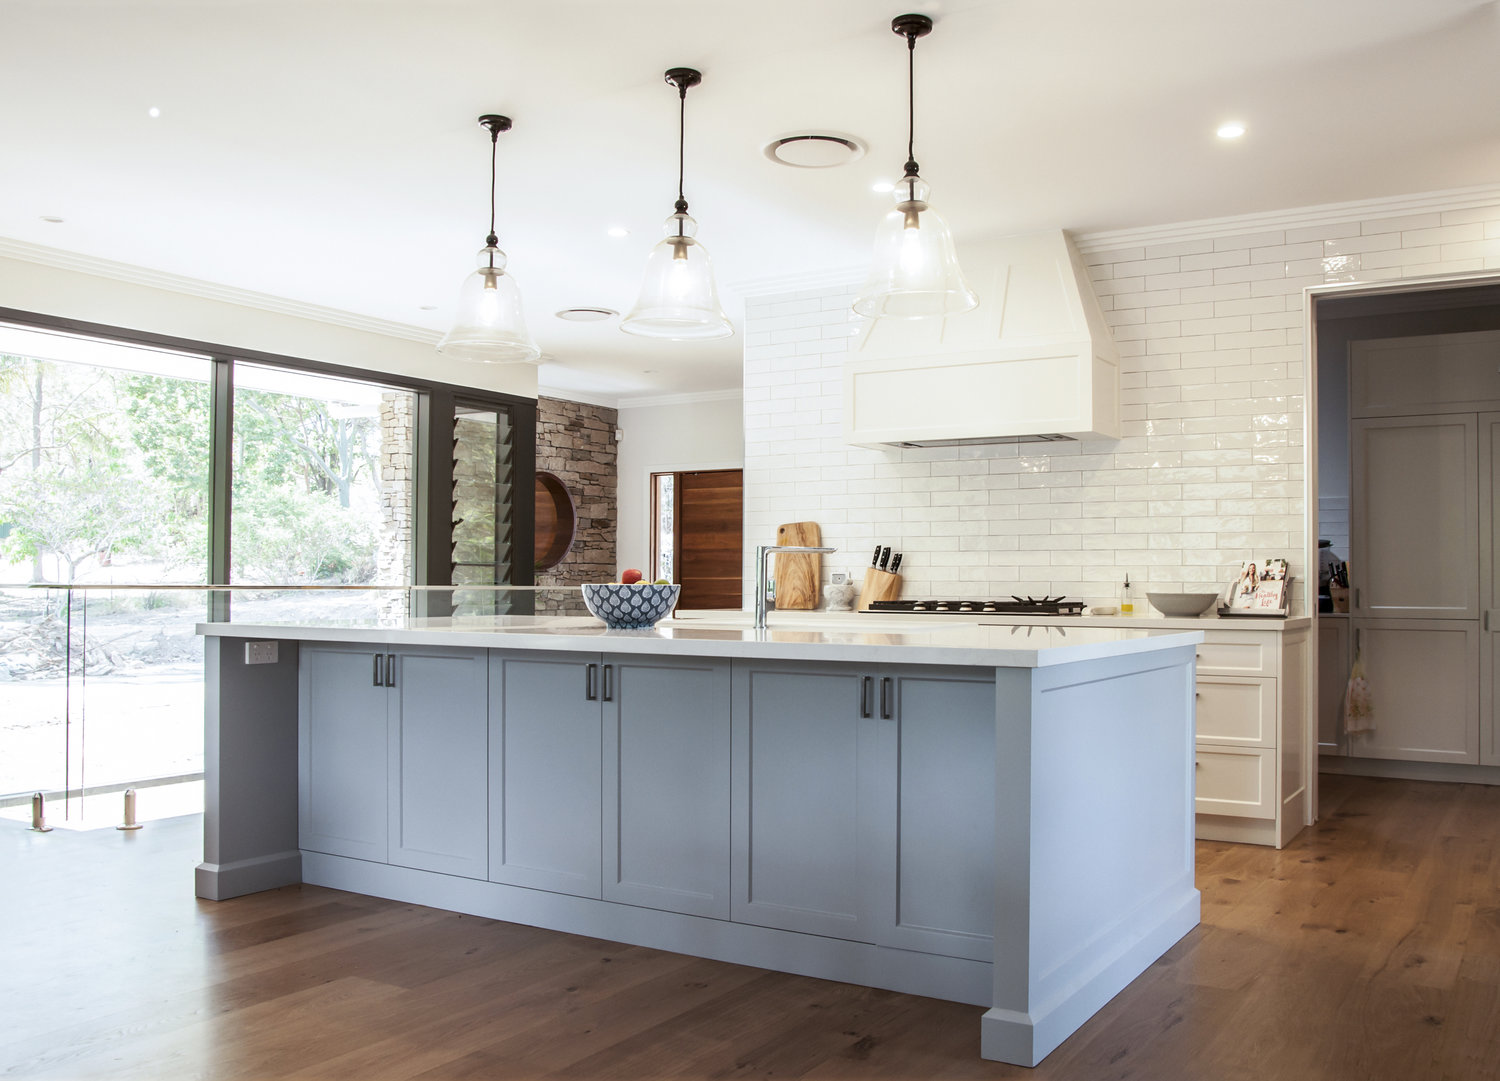 Burbank — Style Kitchens by Design